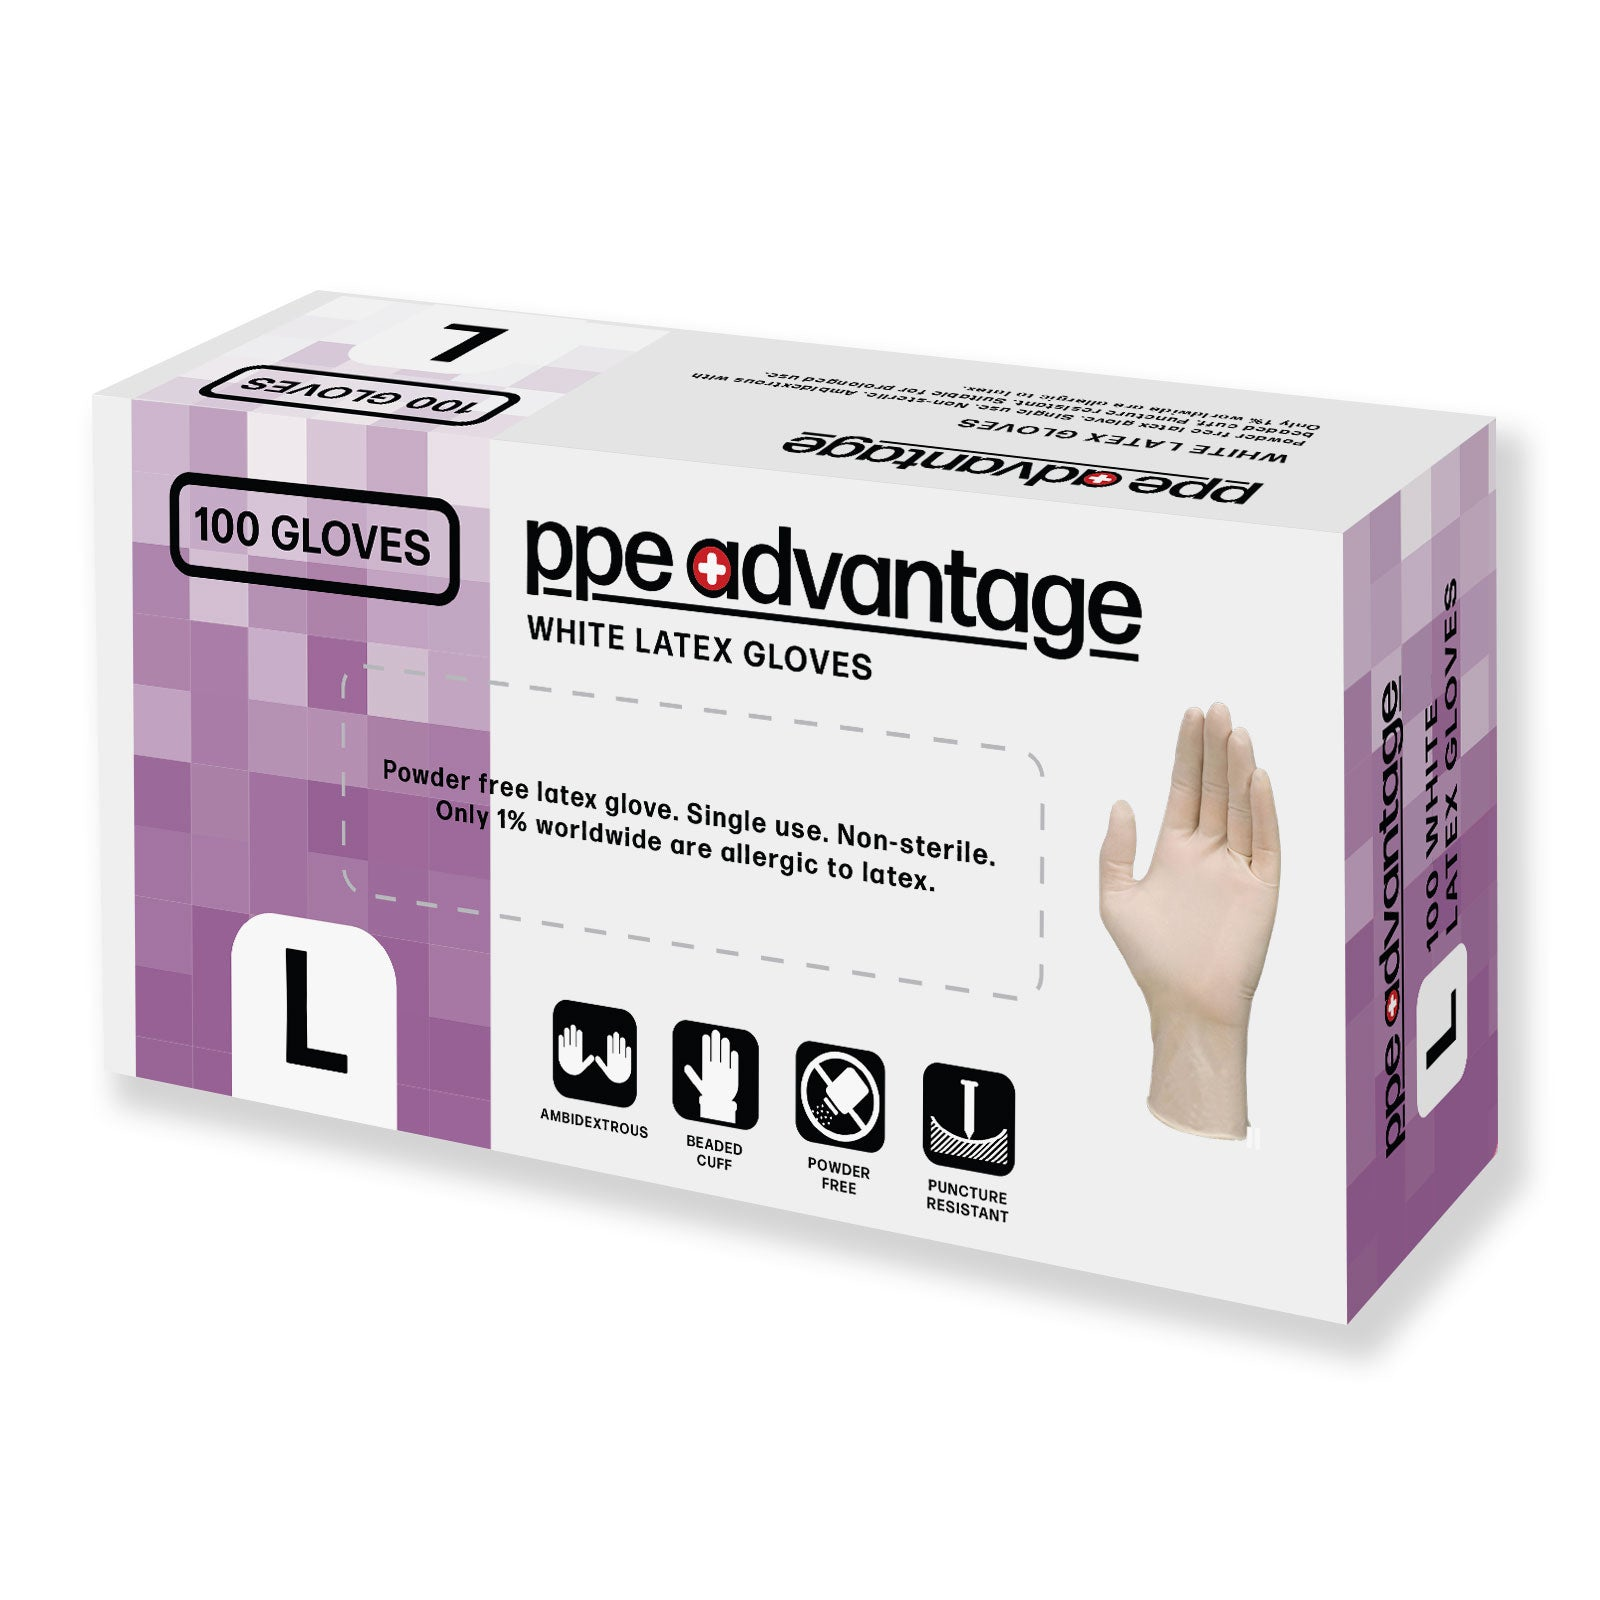 3210 PPE Advantage White Latex Gloves